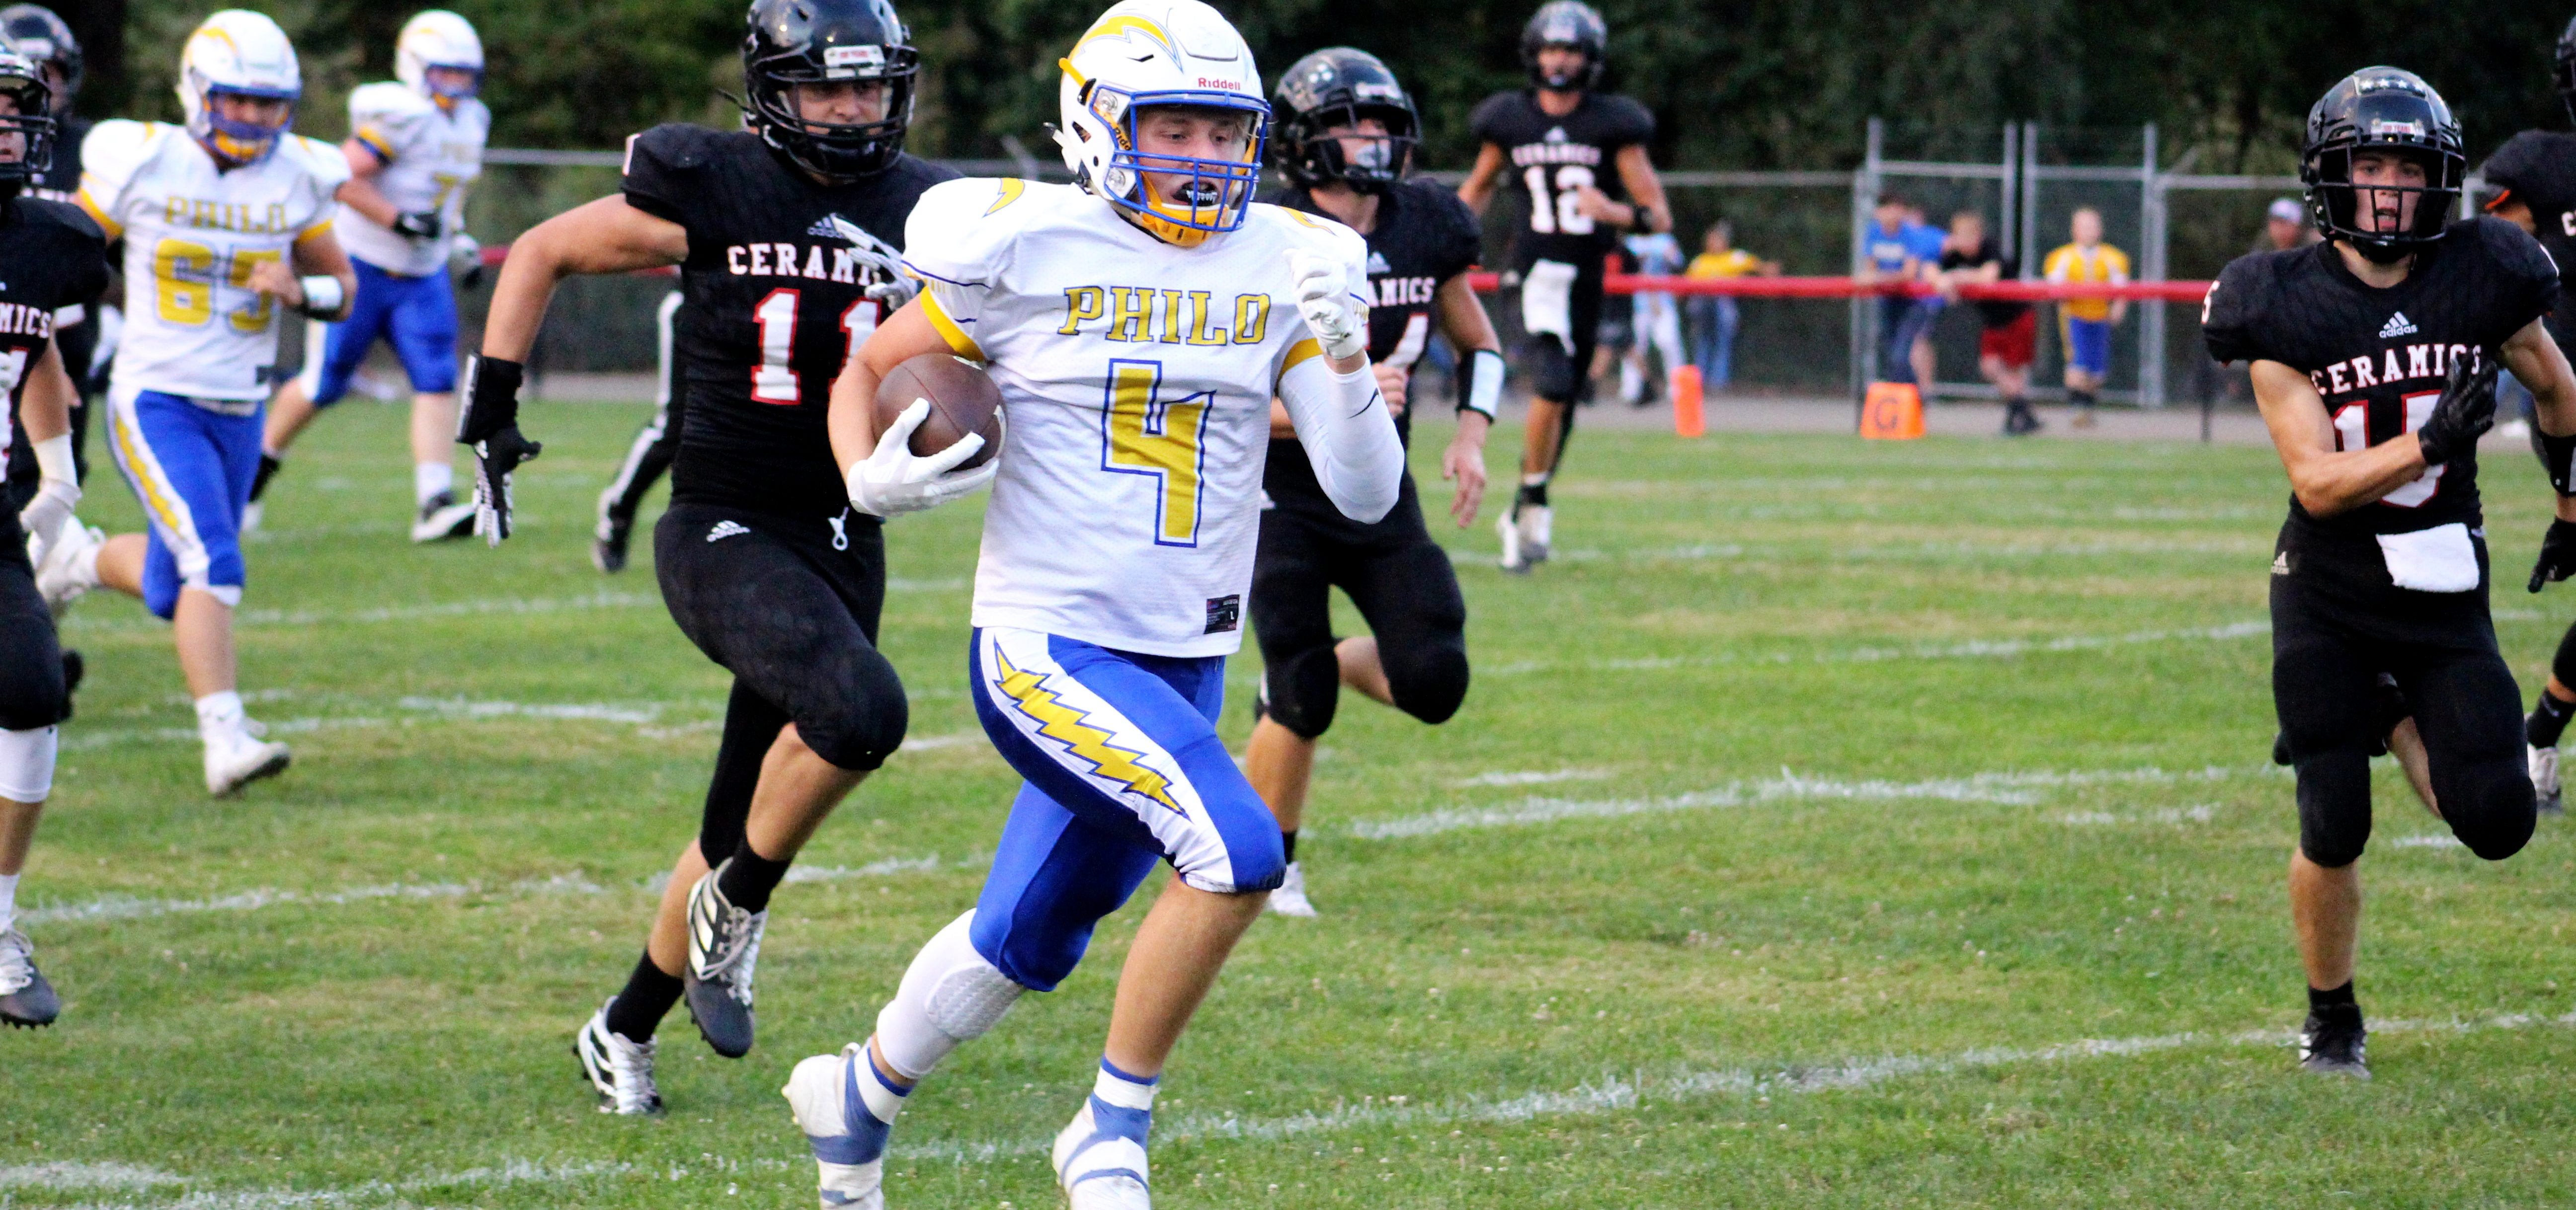 Philo runner speeds past Crooksville defenders